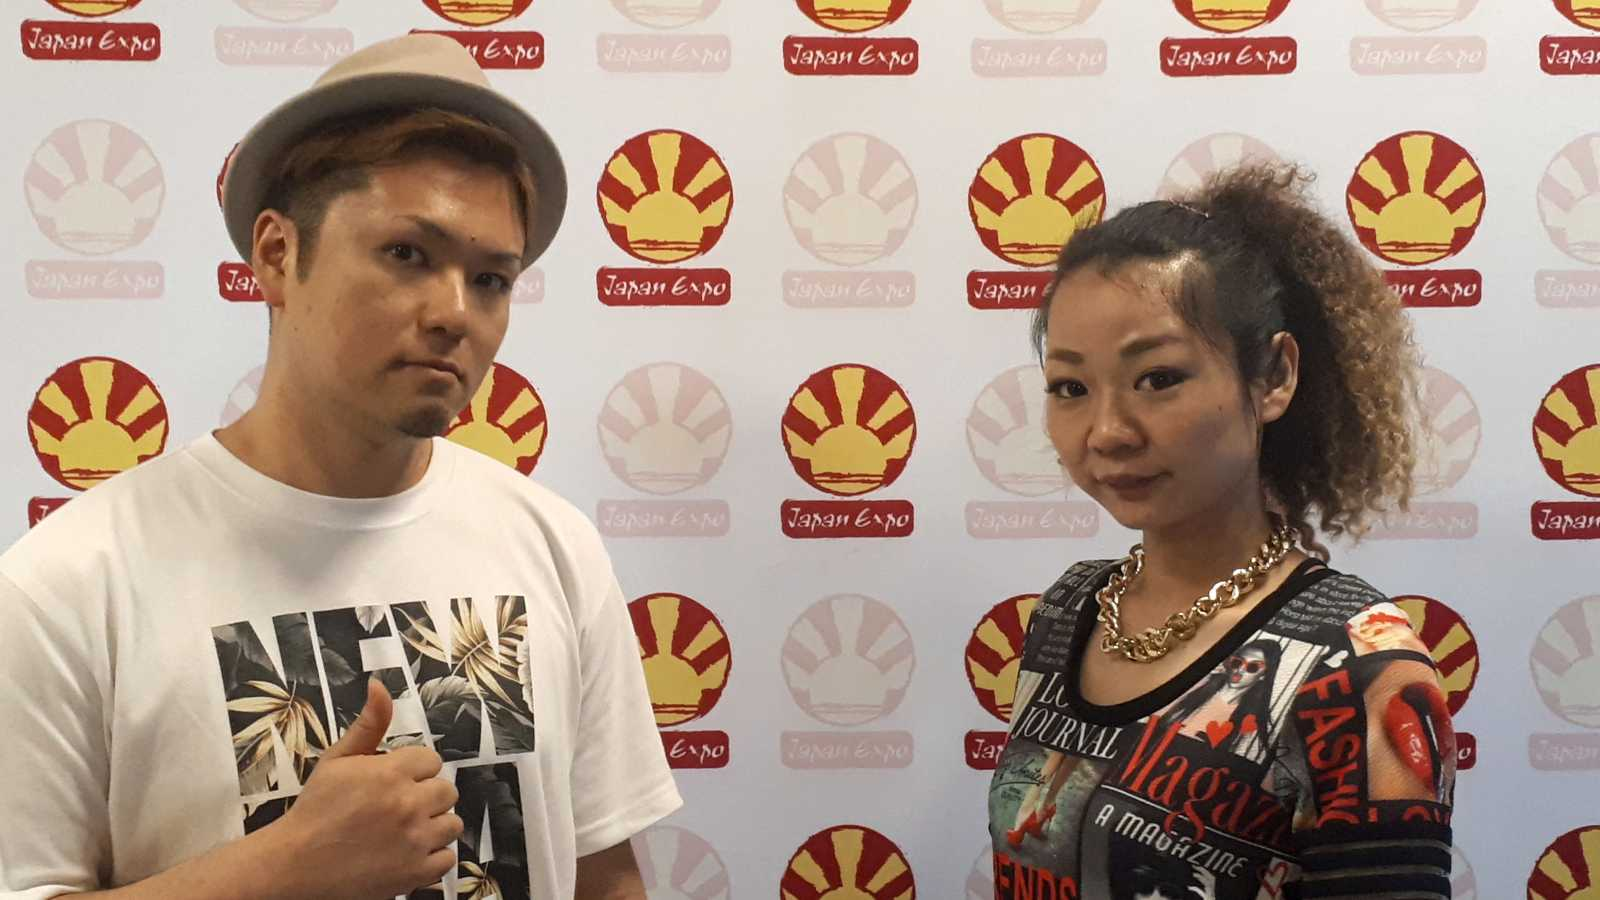 Interview d'ILU GRACE à Japan Expo 2019 © Aravinth